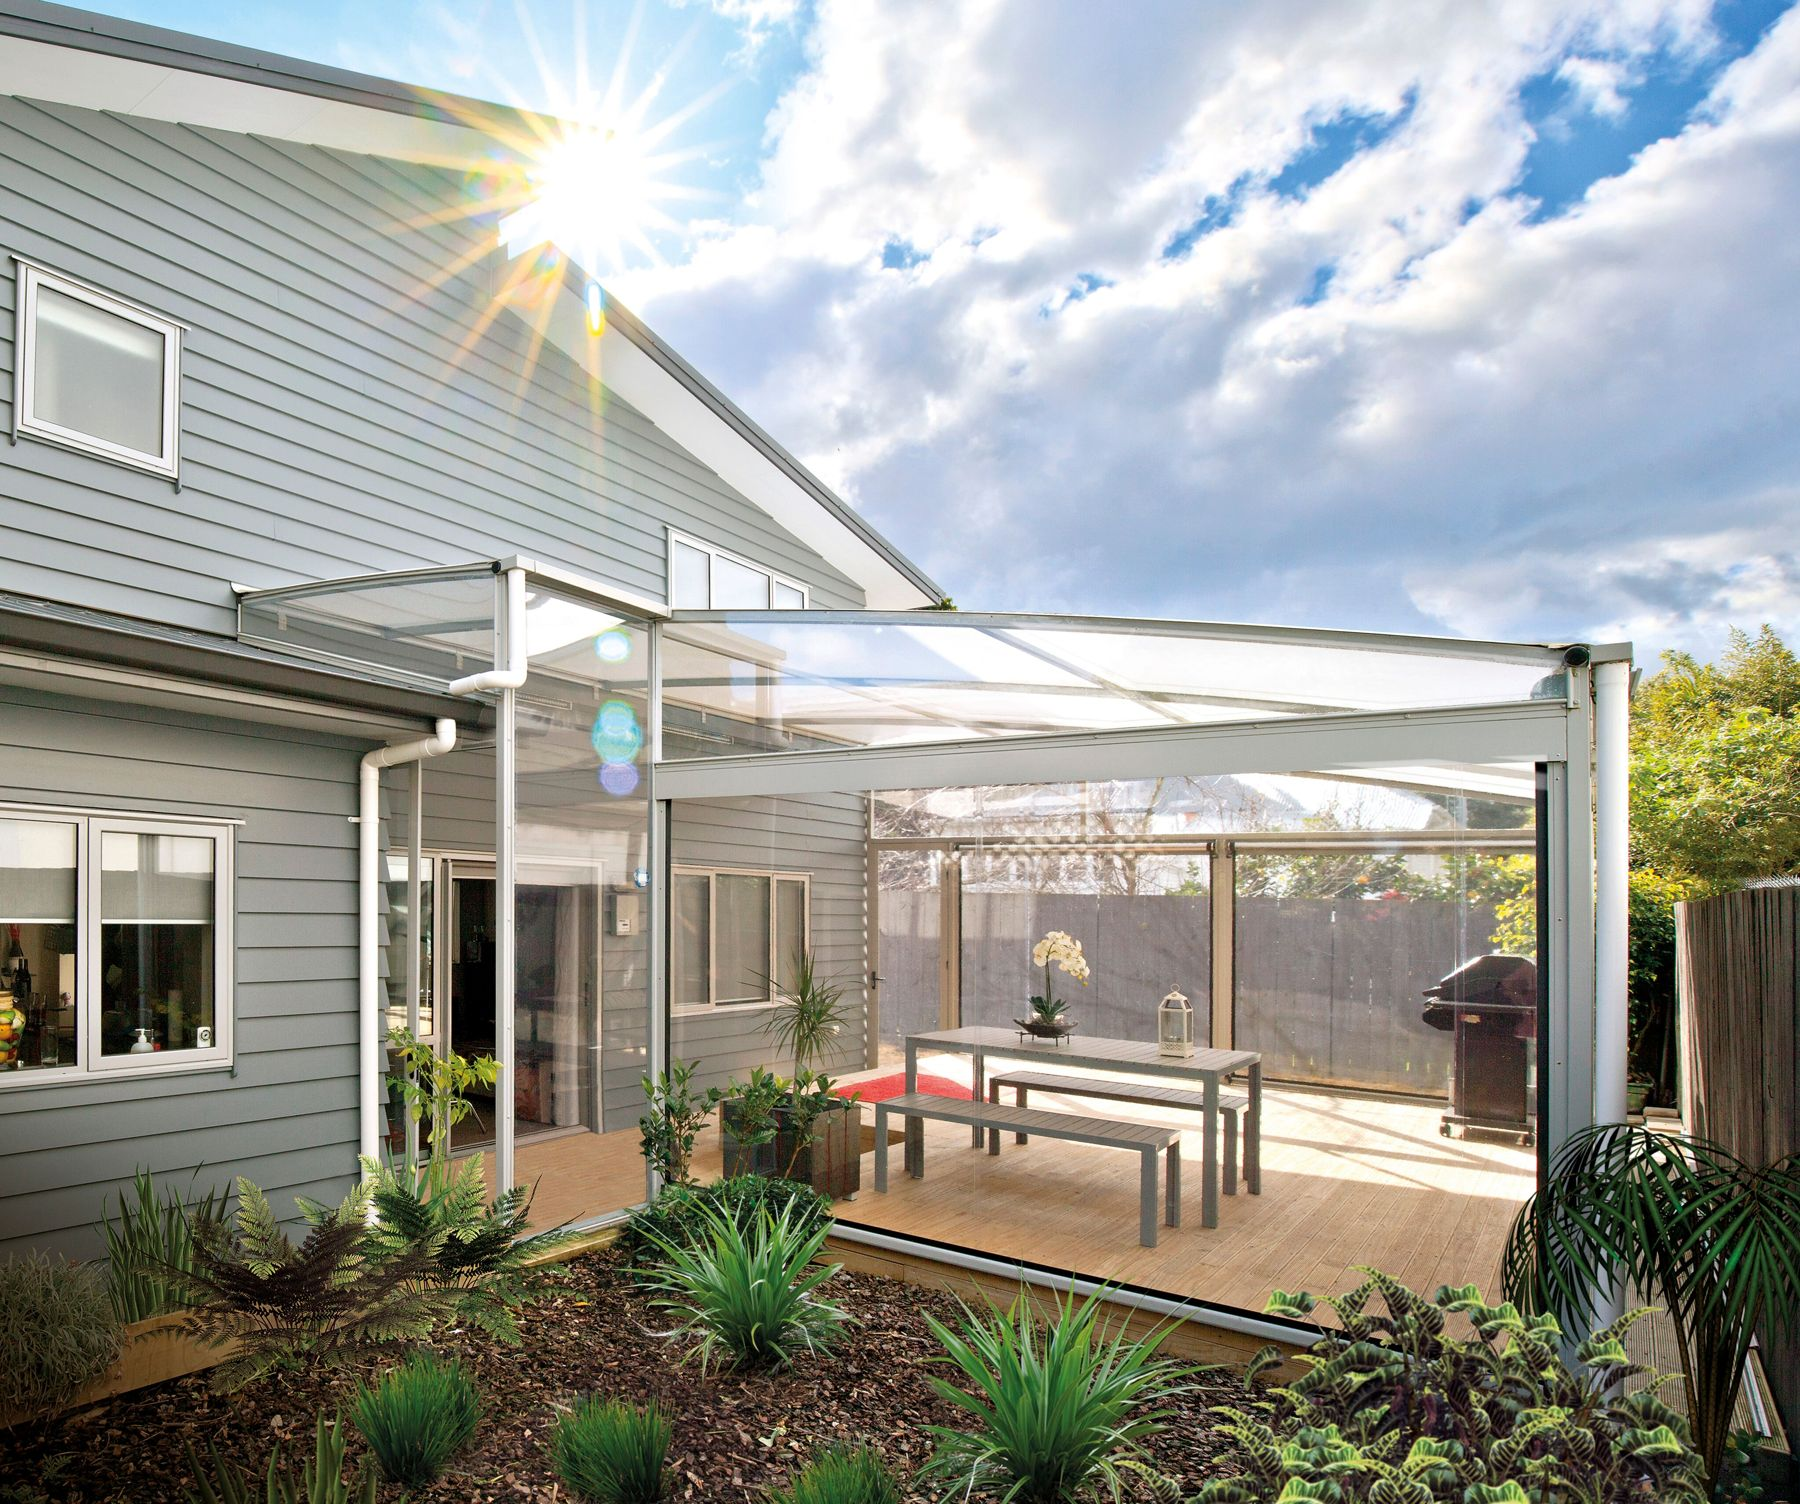 Canopy Awning or Conservatory? The Pros & Cons Explained